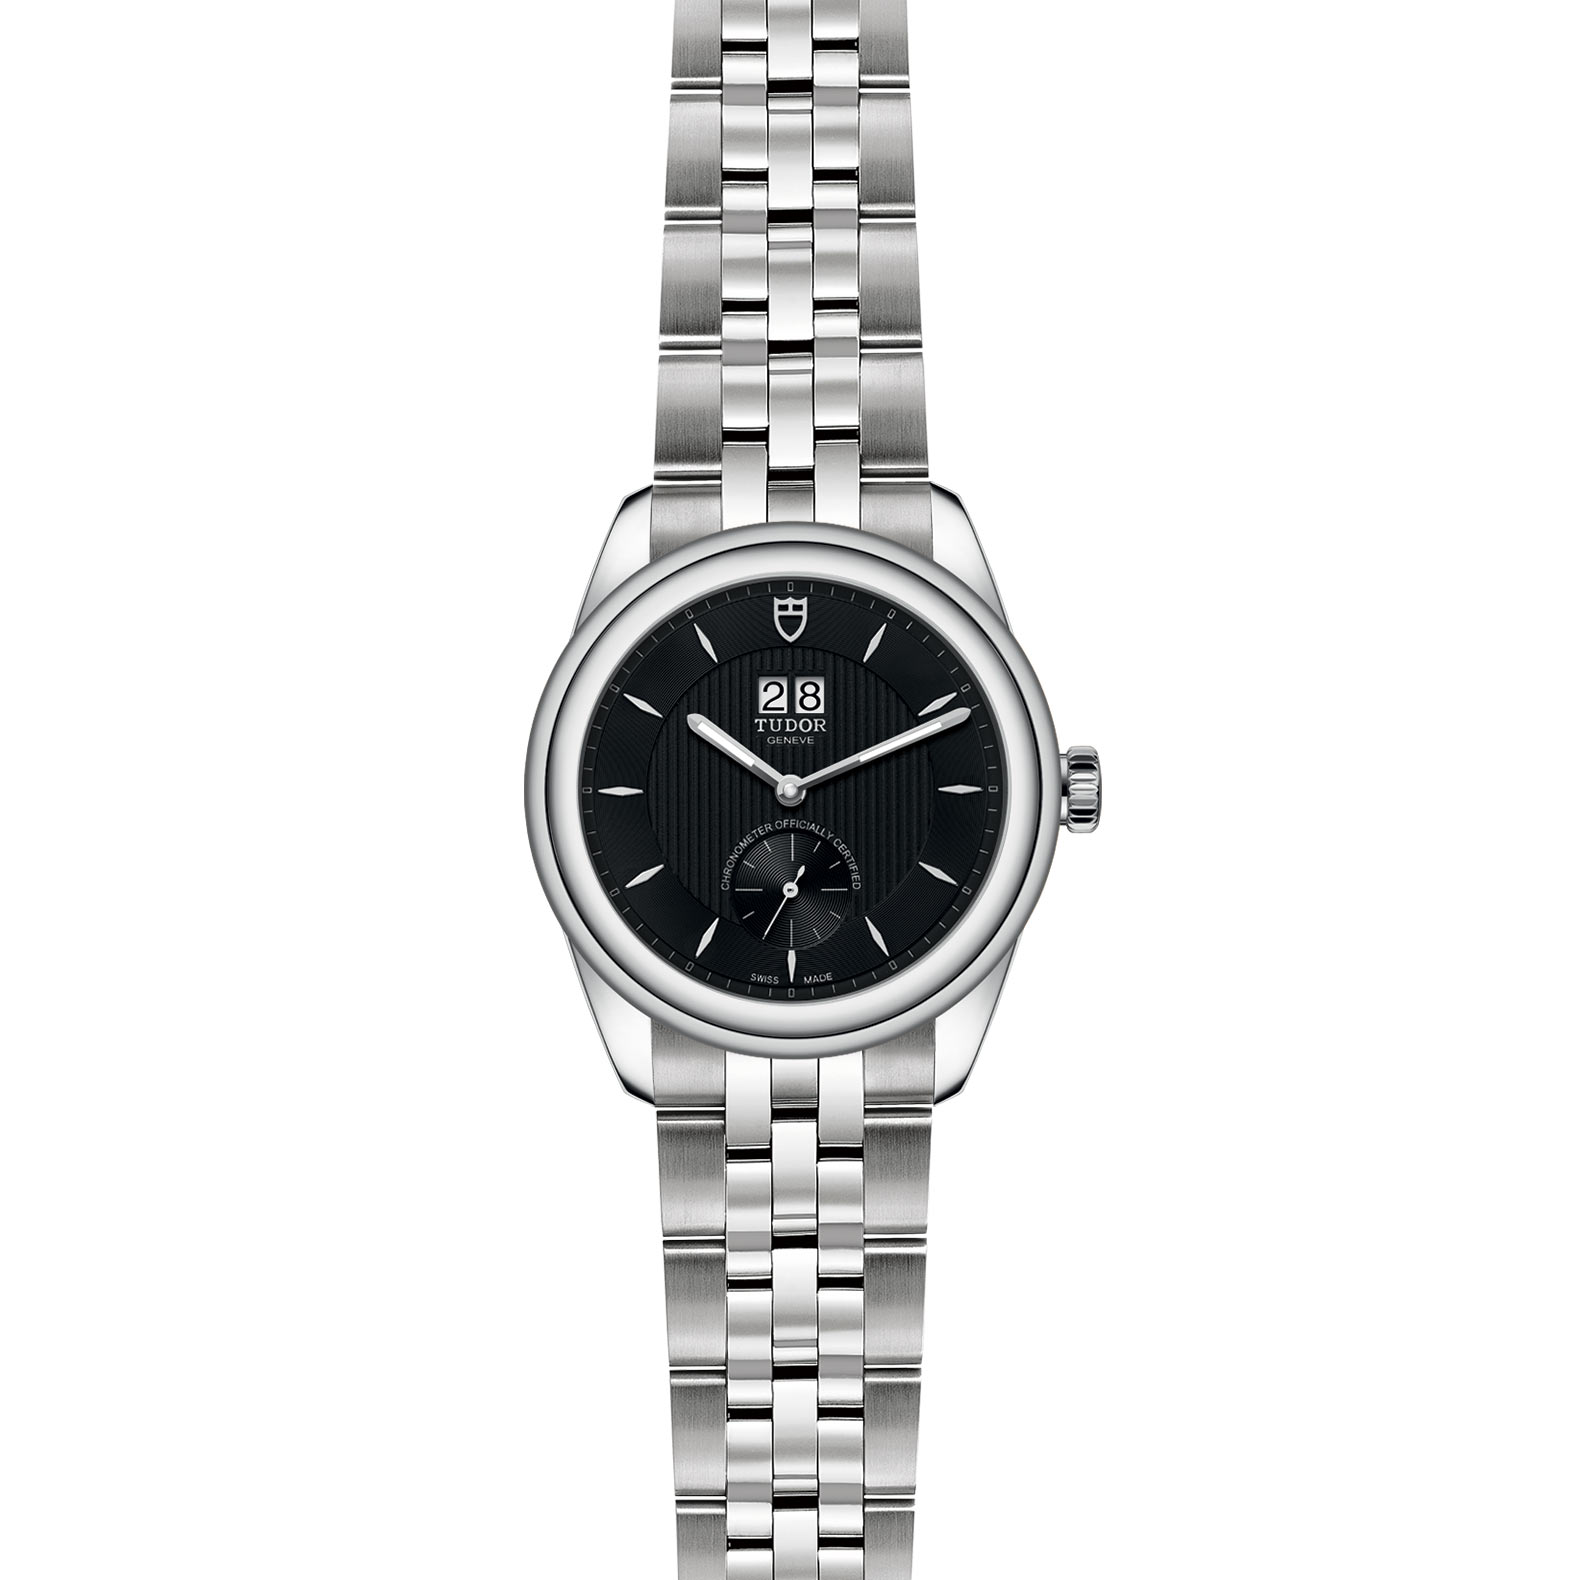 TUDOR Glamour Double Date M57100 0003 Frontfacing